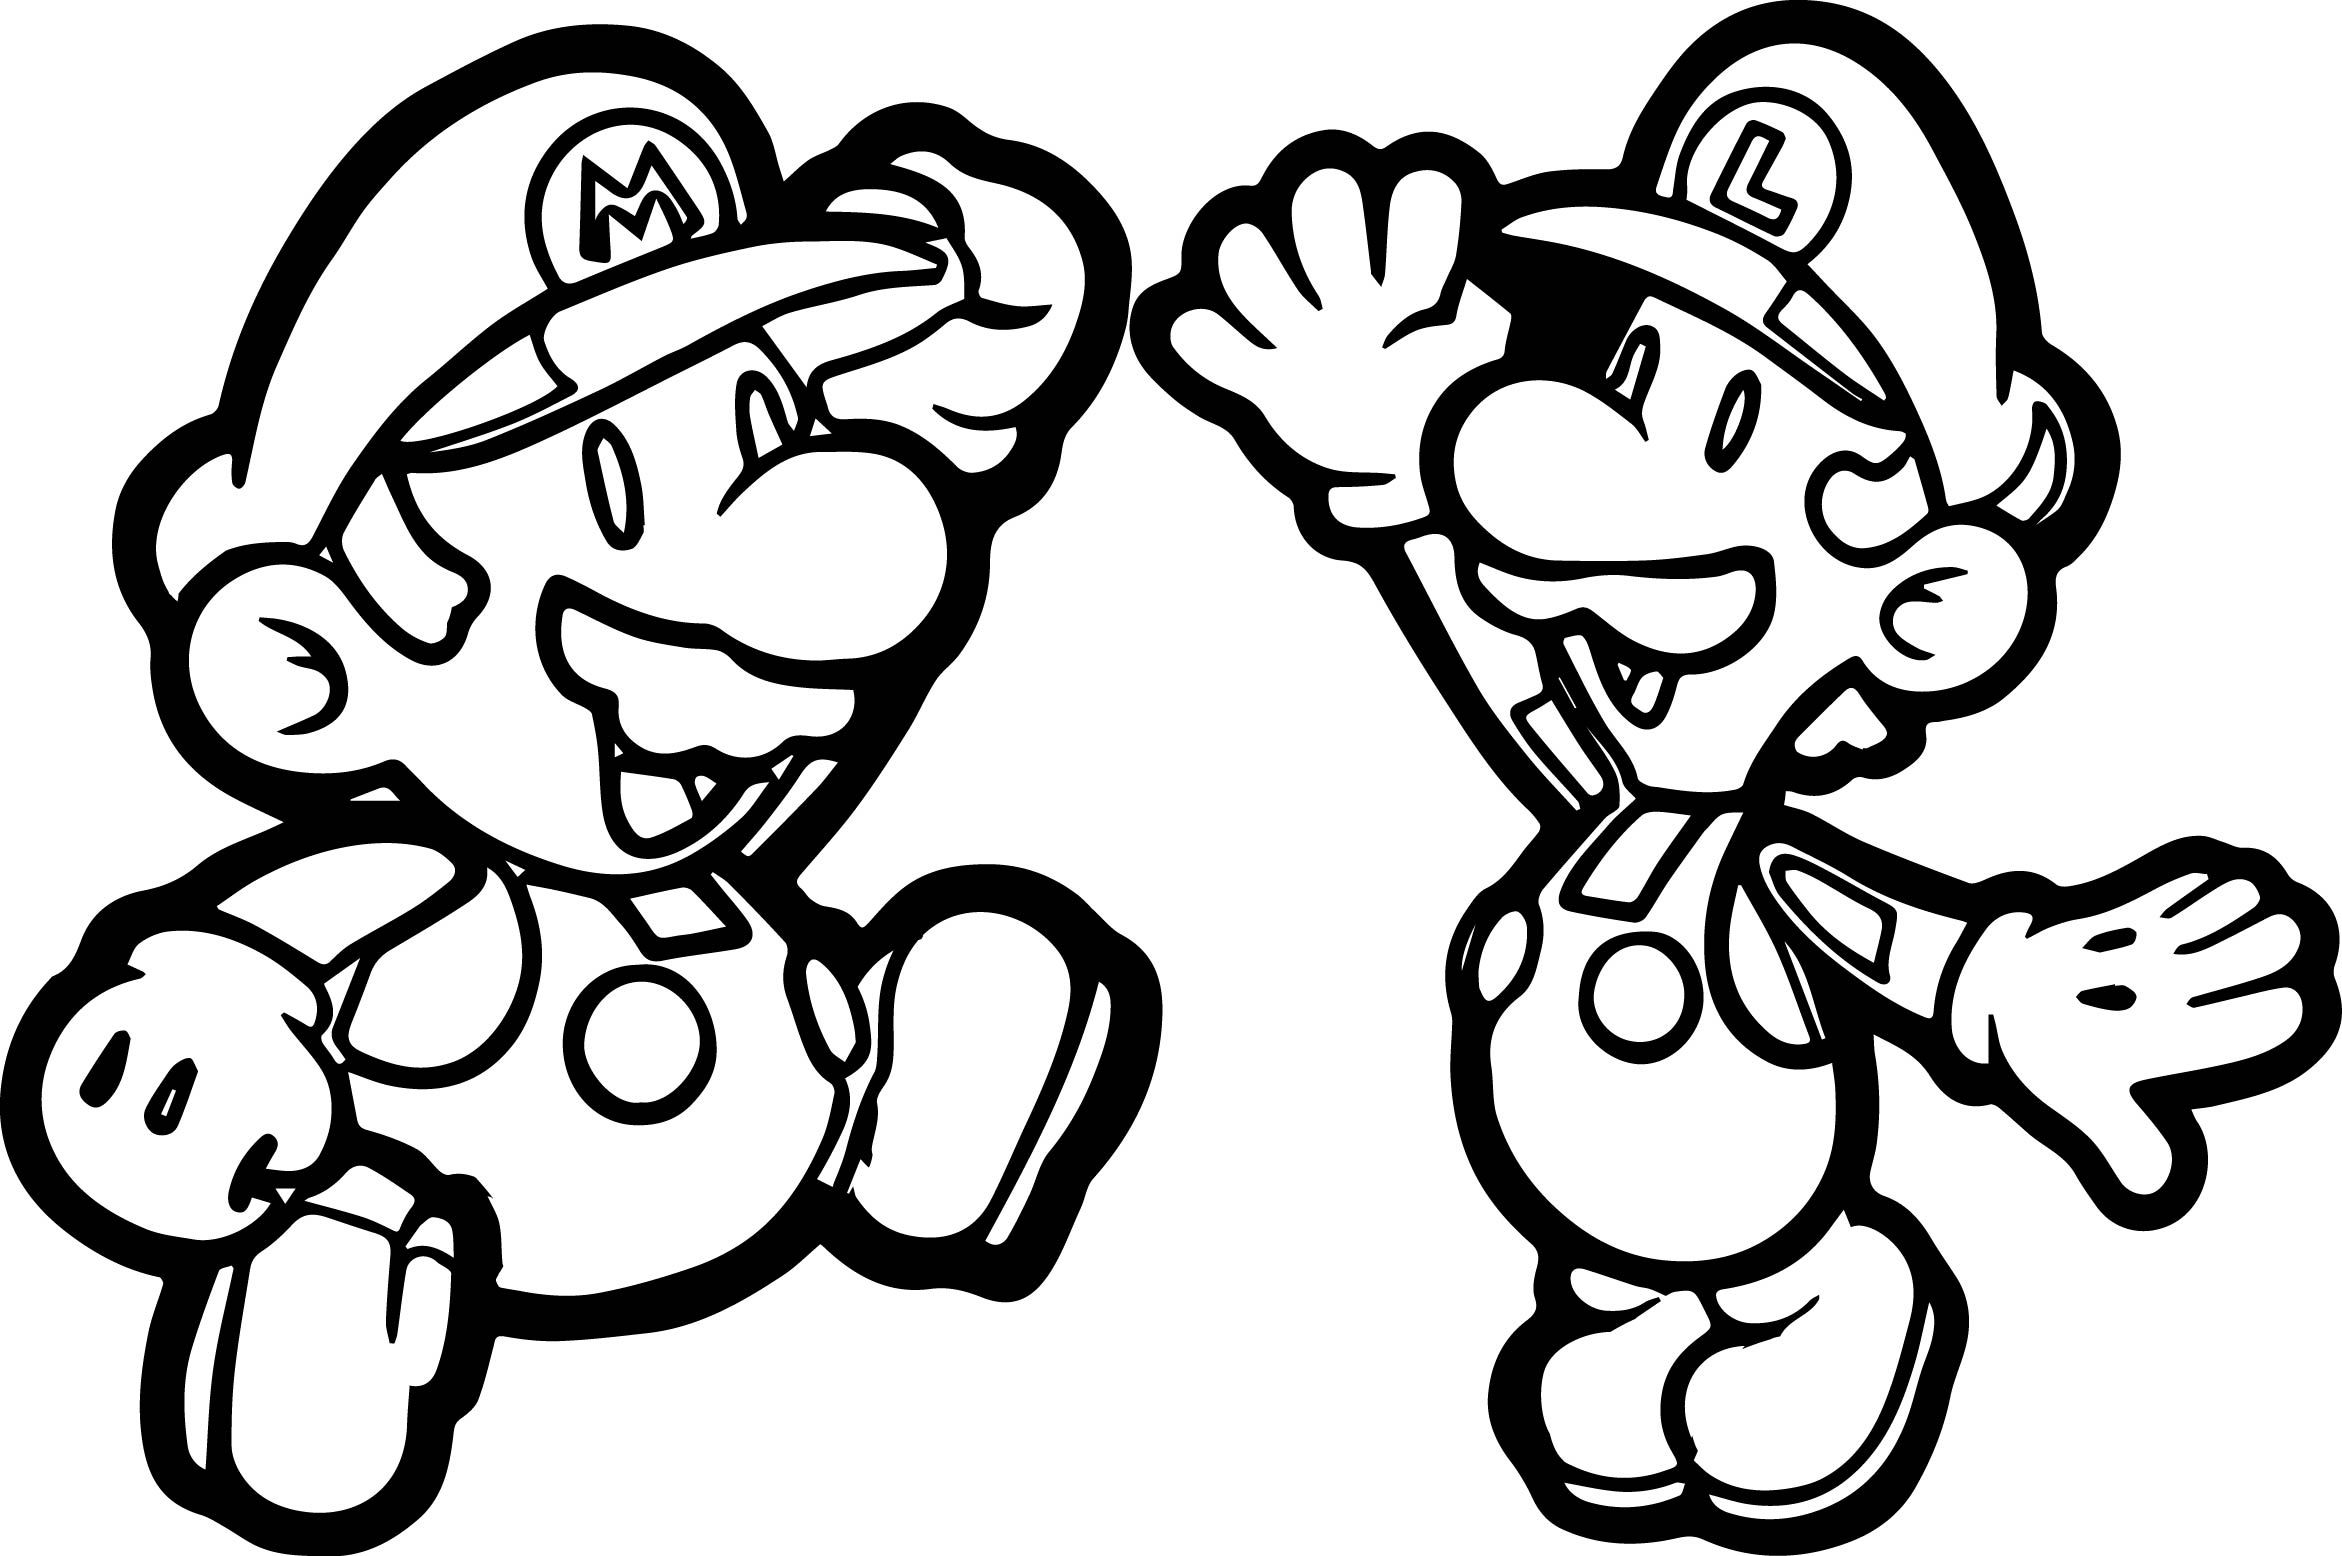 Awesome Super Mario Brothers Super Mario Fly Coloring Page Super Mario Coloring Pages Mario Coloring Pages Coloring Pages